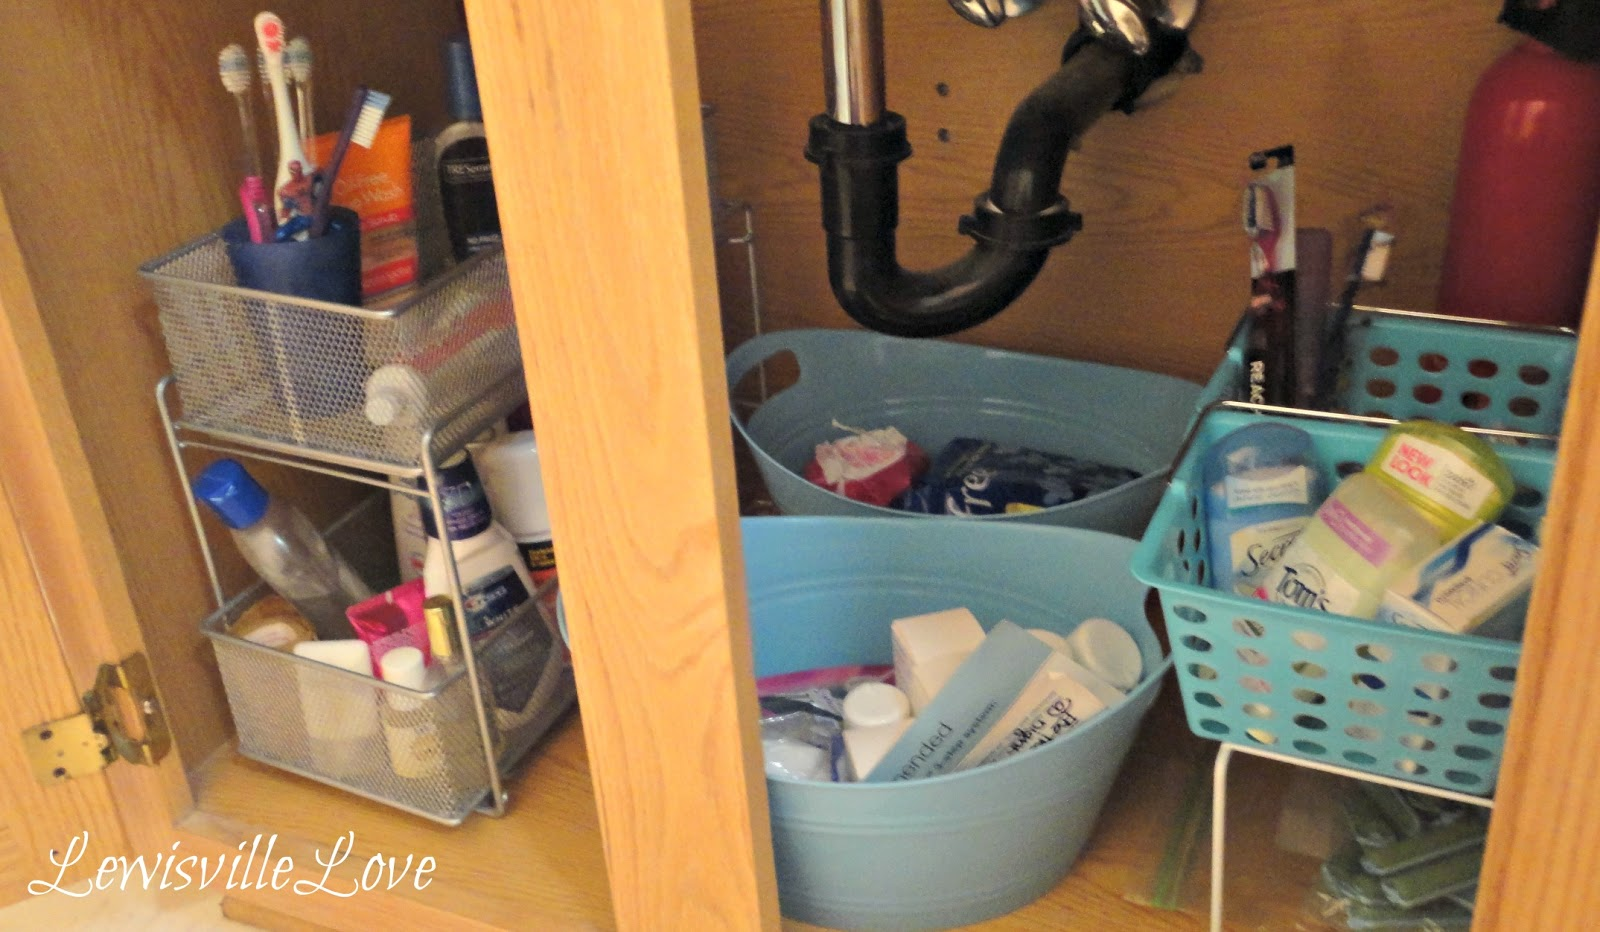 Lewisville Love Organizing The Messy Vanity